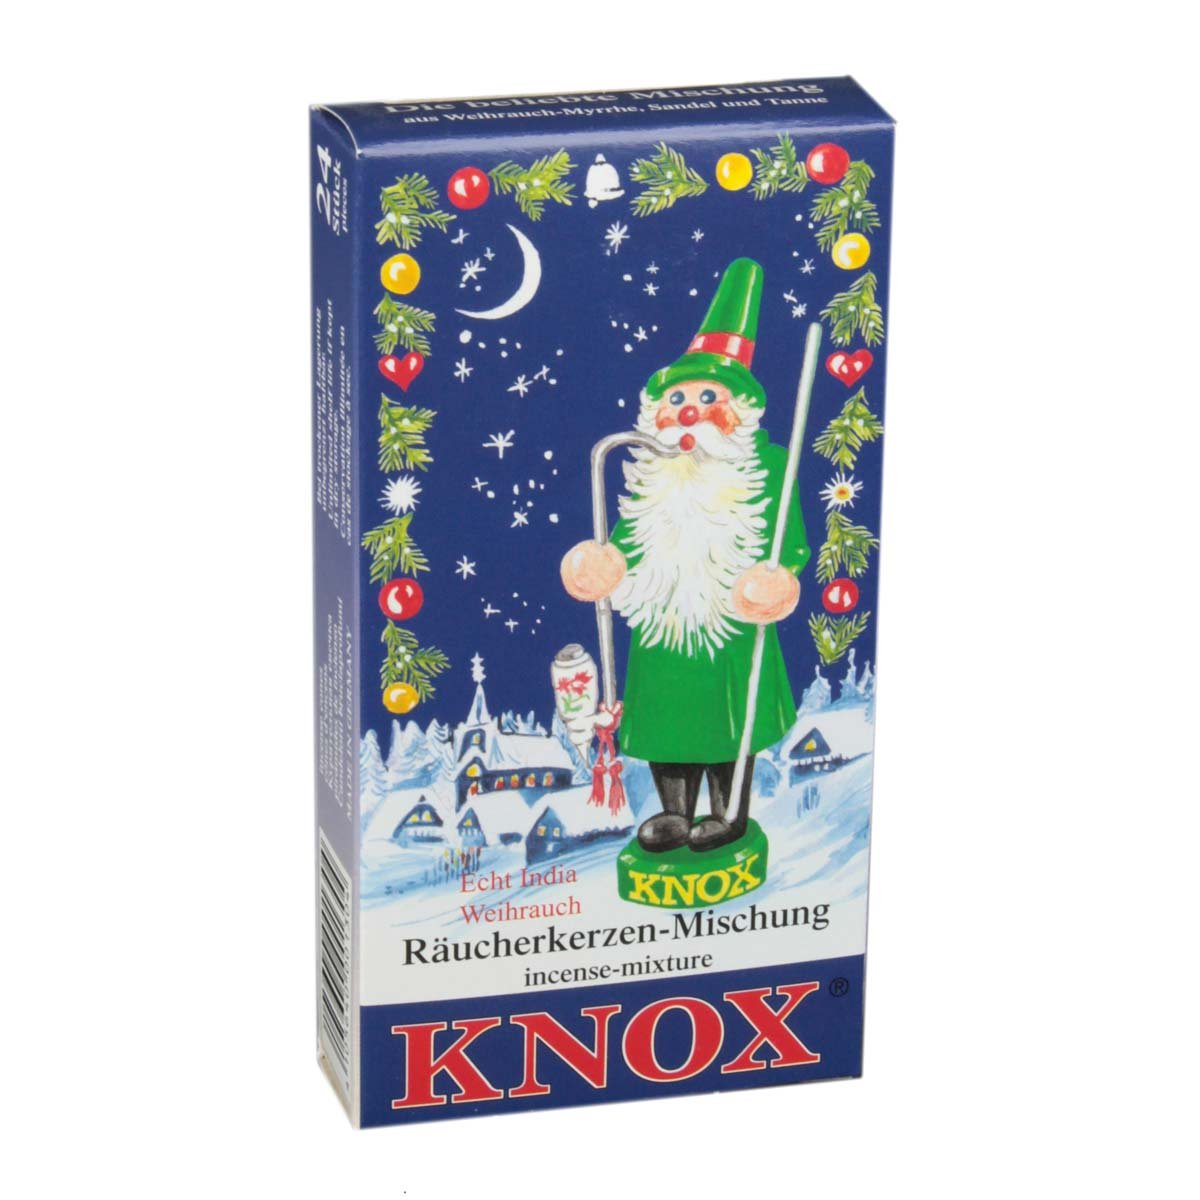 Sigro Knox Burners Mixture of Fir and Sandal Incense Cones, Blue, One Size